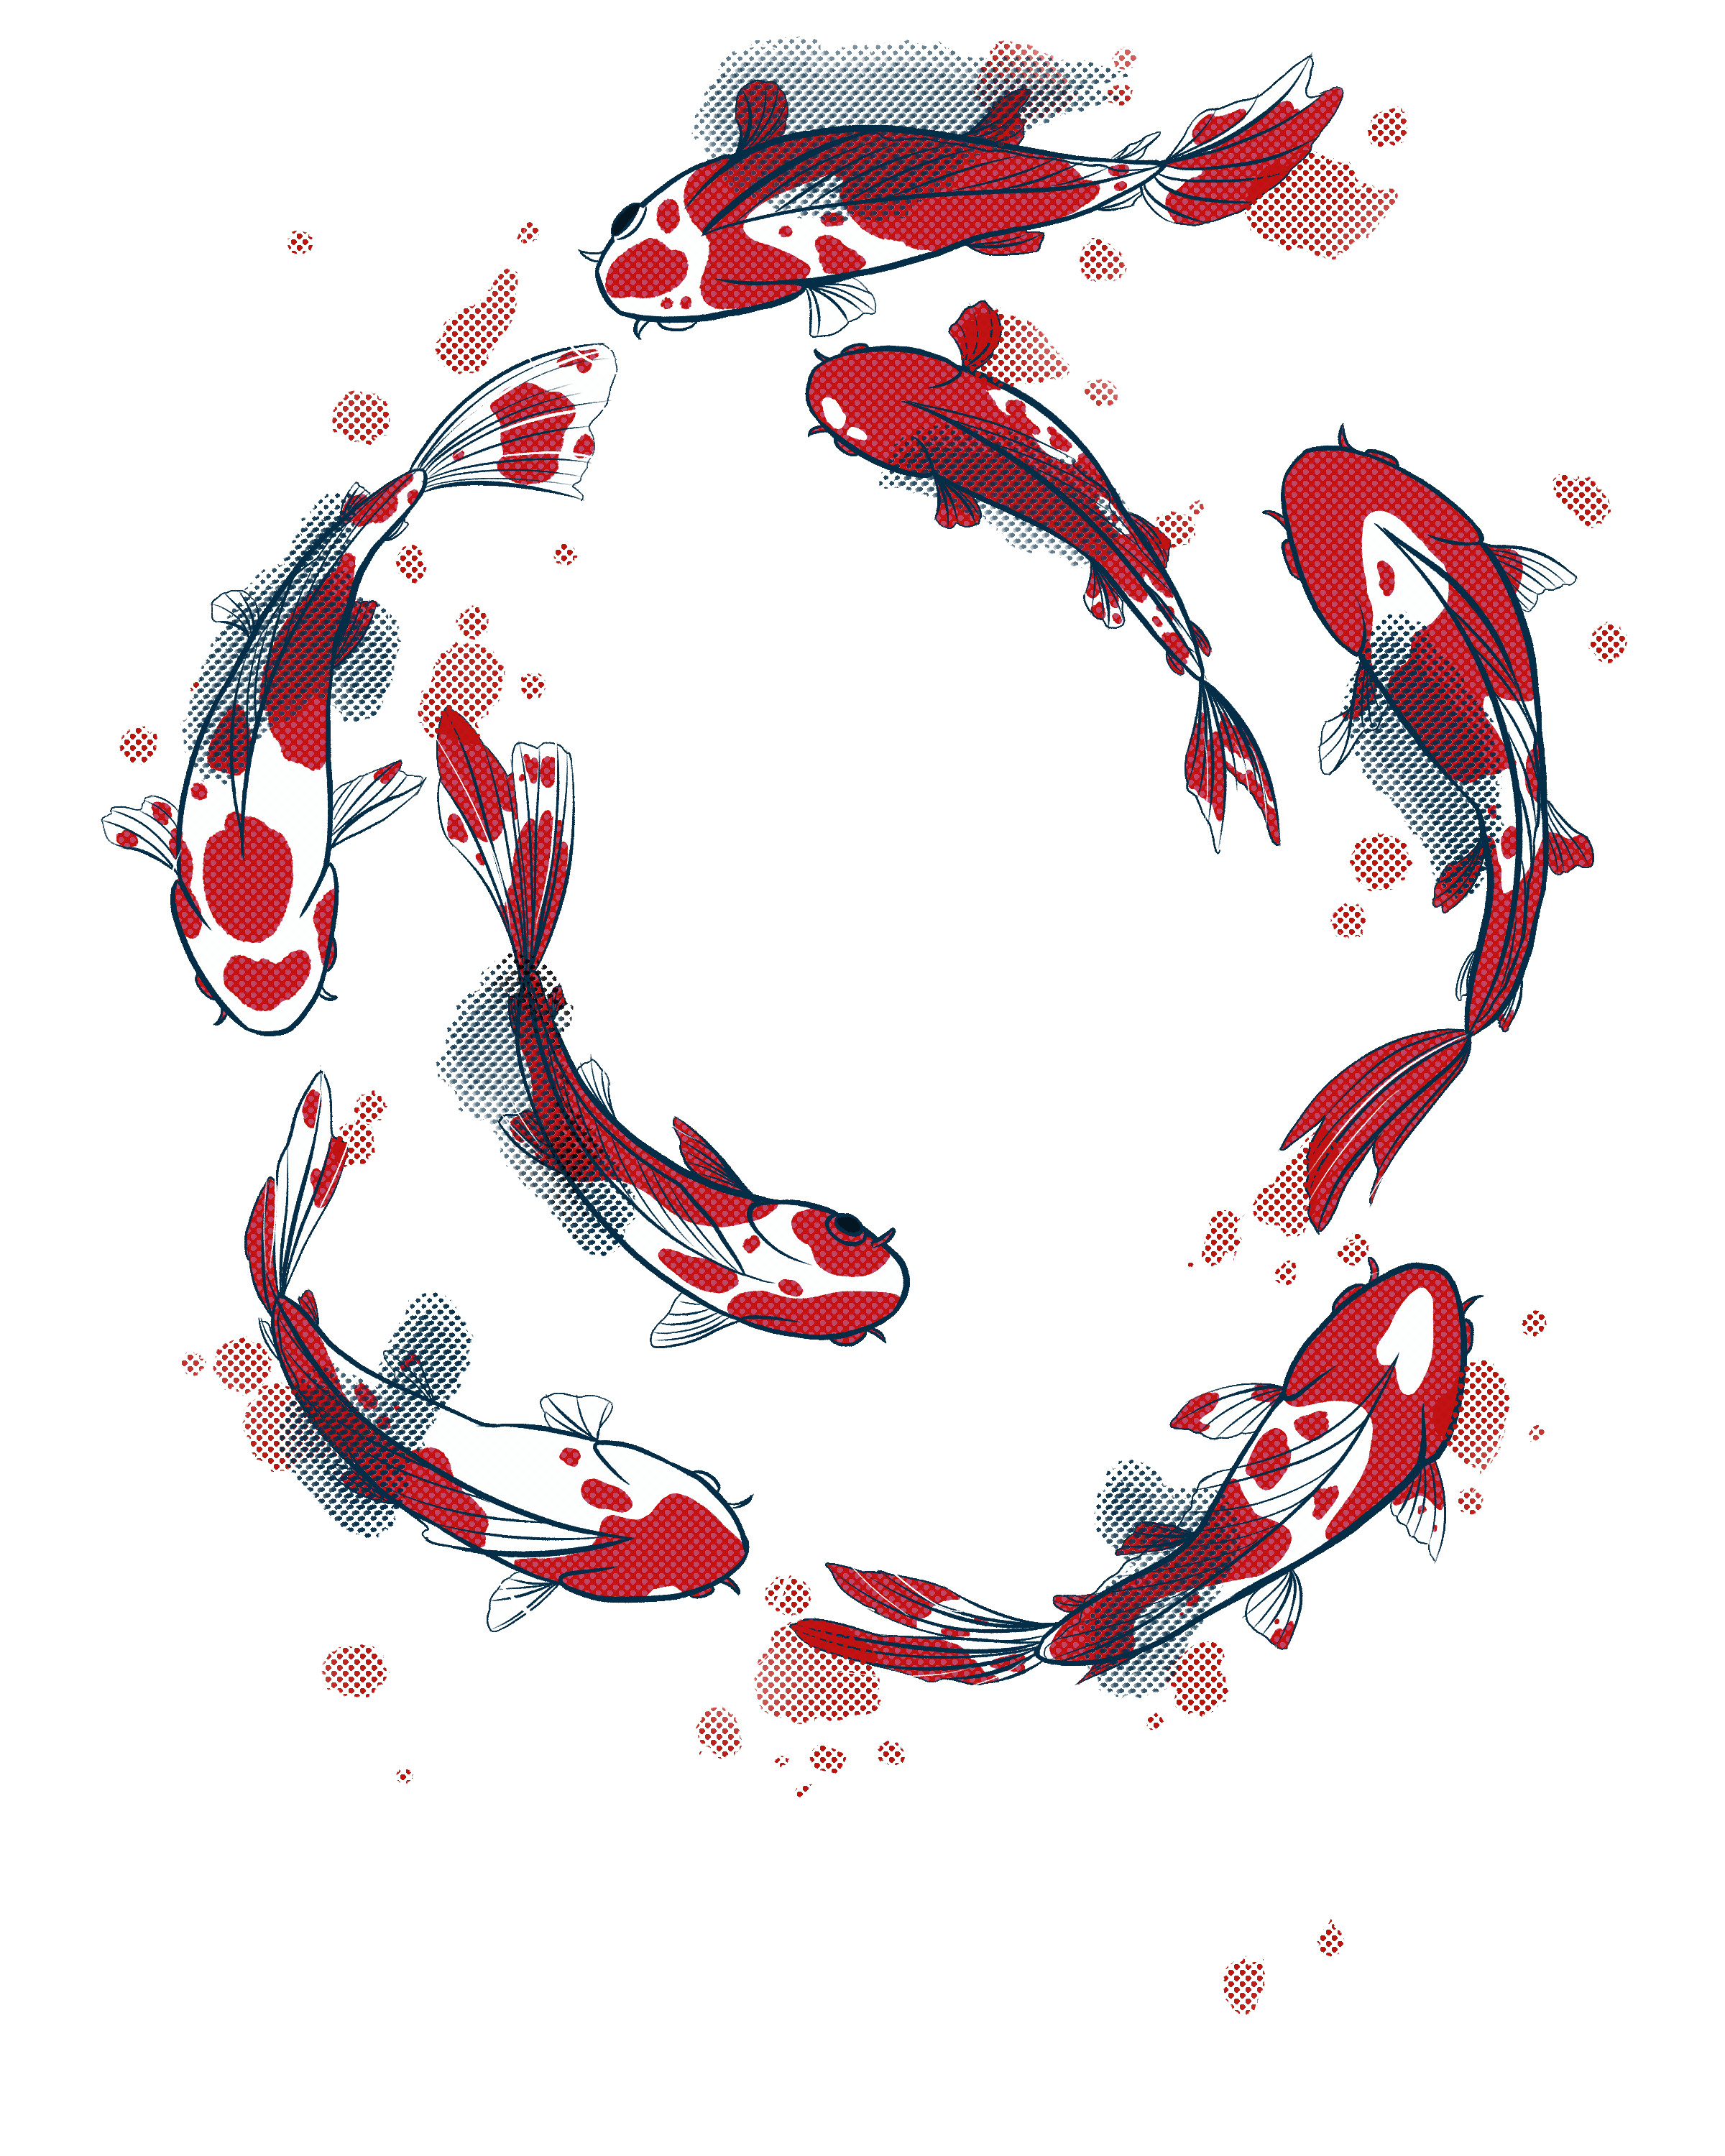 The Koi Fish Seperated from the rest of the image.